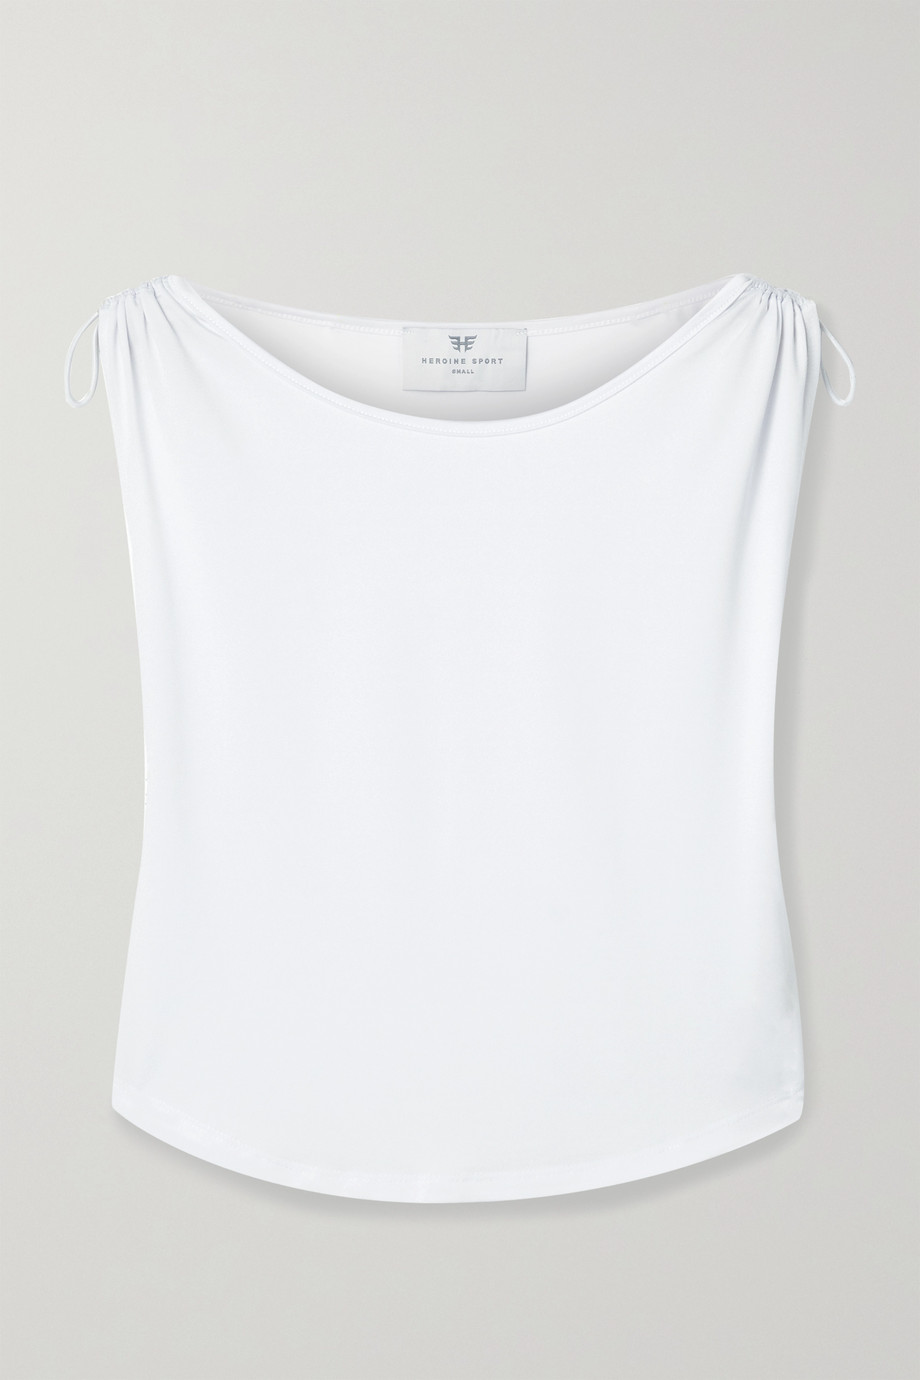 Heroine Sport Training ruched stretch tank